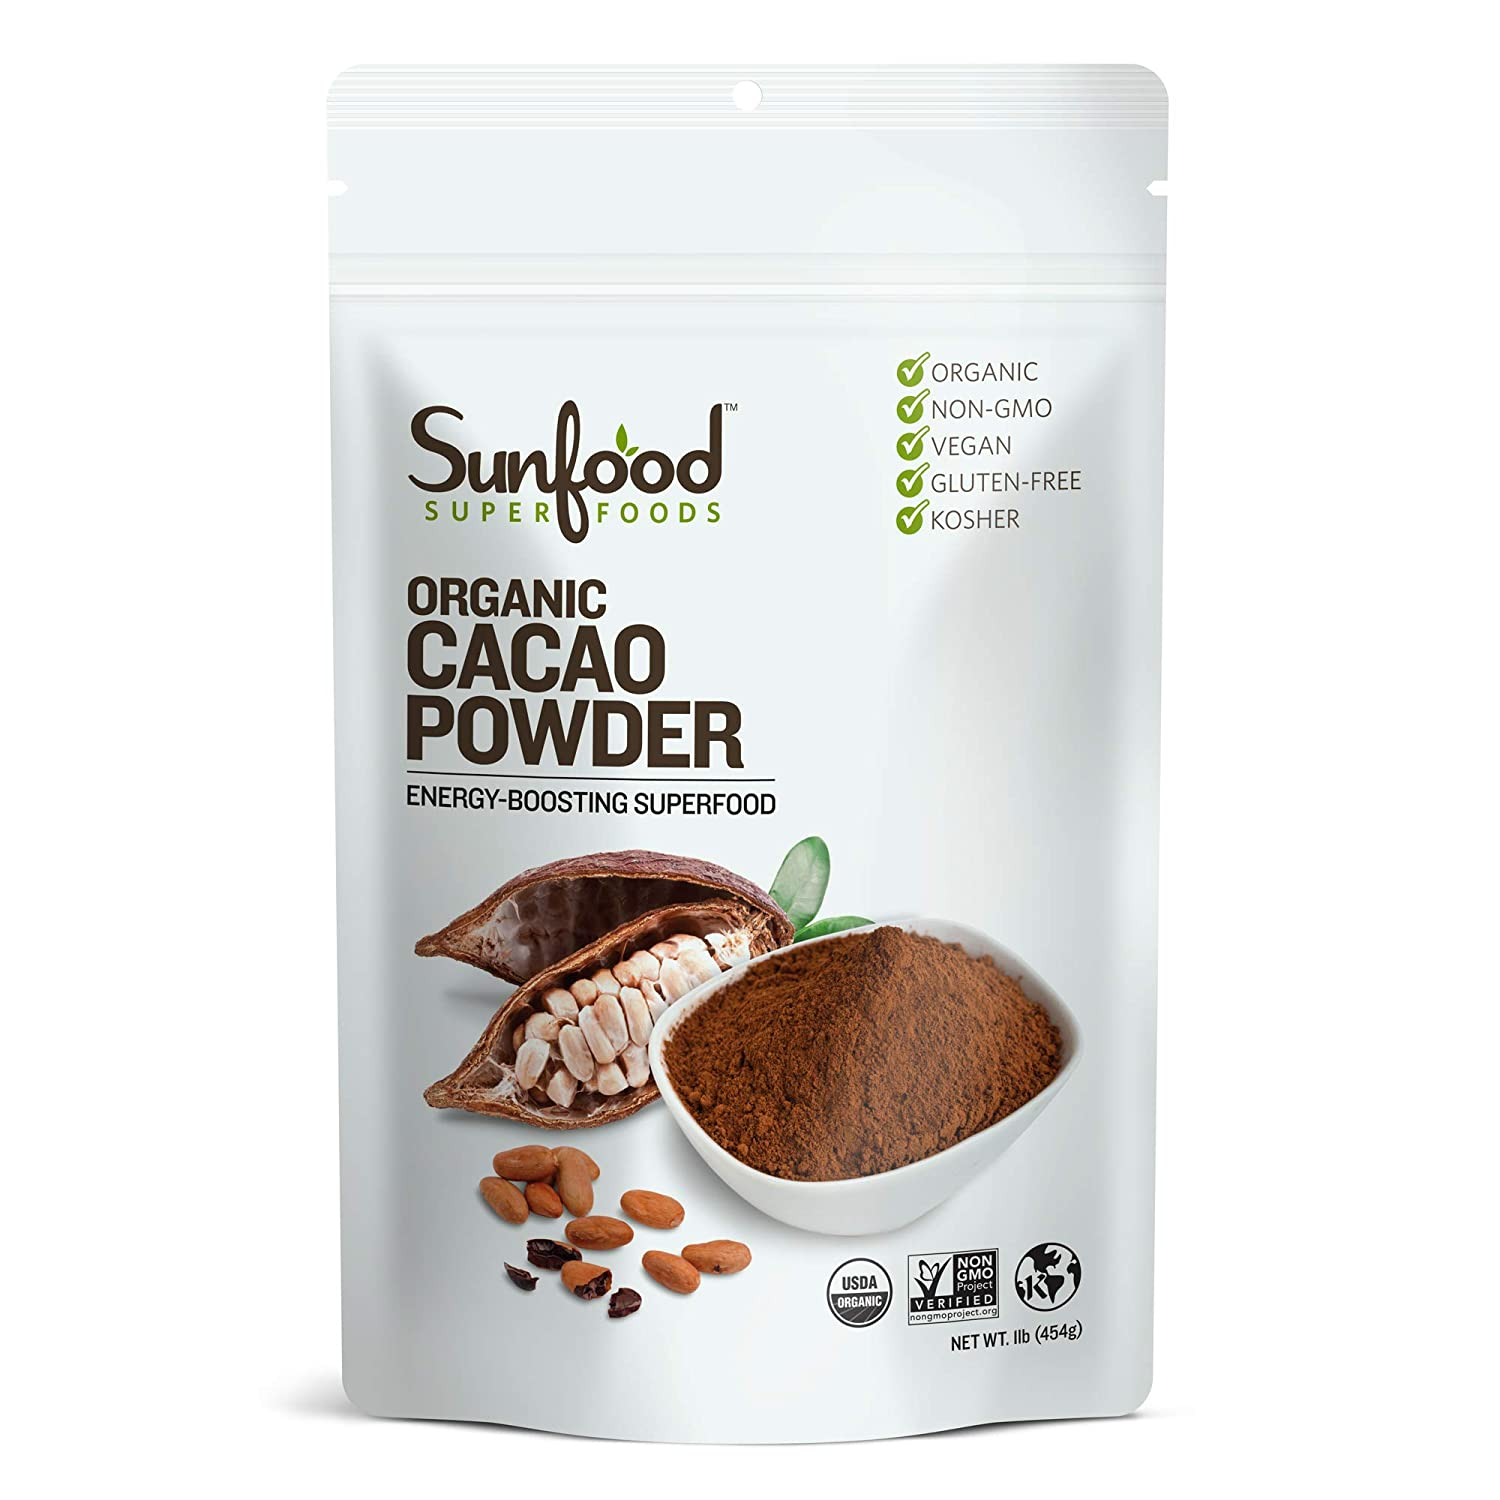 Sunfood Cacao Powder Image